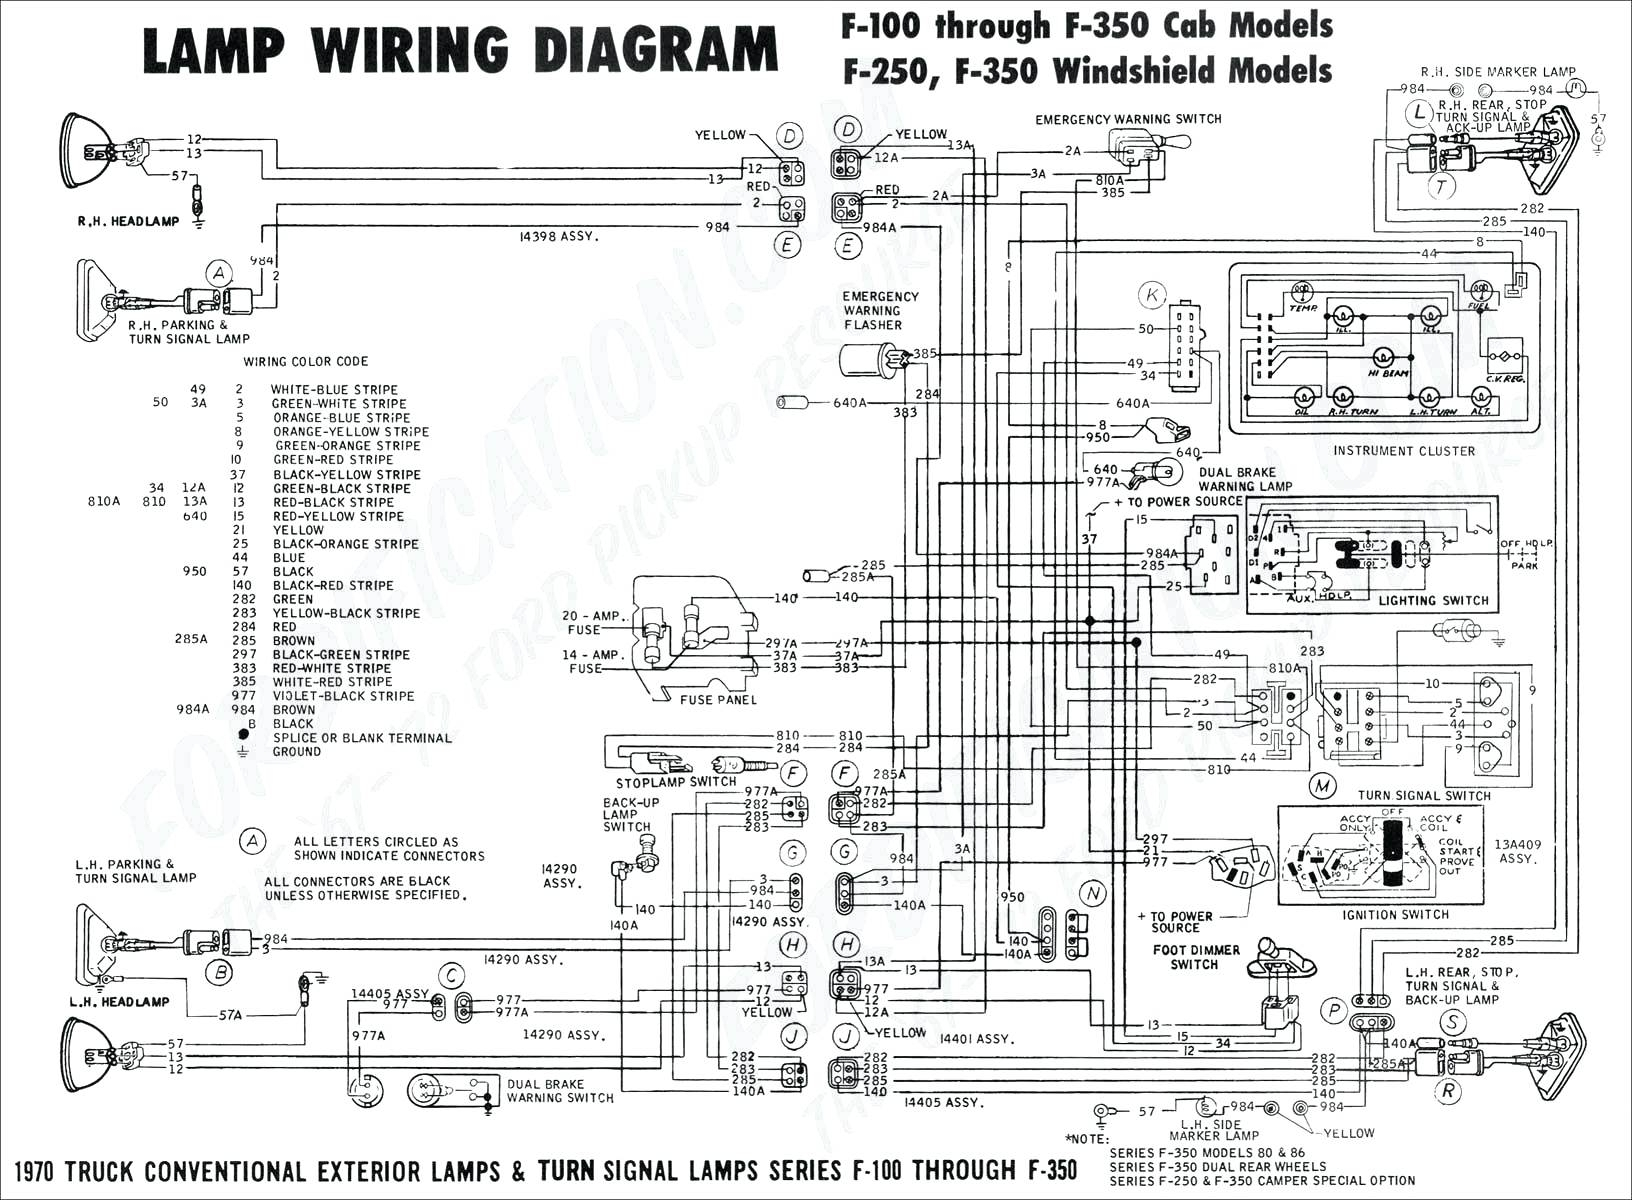 hk42fz009 wiring diagram Collection-hk42fz009 wiring diagram Download ford f53 motorhome chassis wiring diagram collection wiring diagram rh visithoustontexas DOWNLOAD Wiring Diagram 7-g